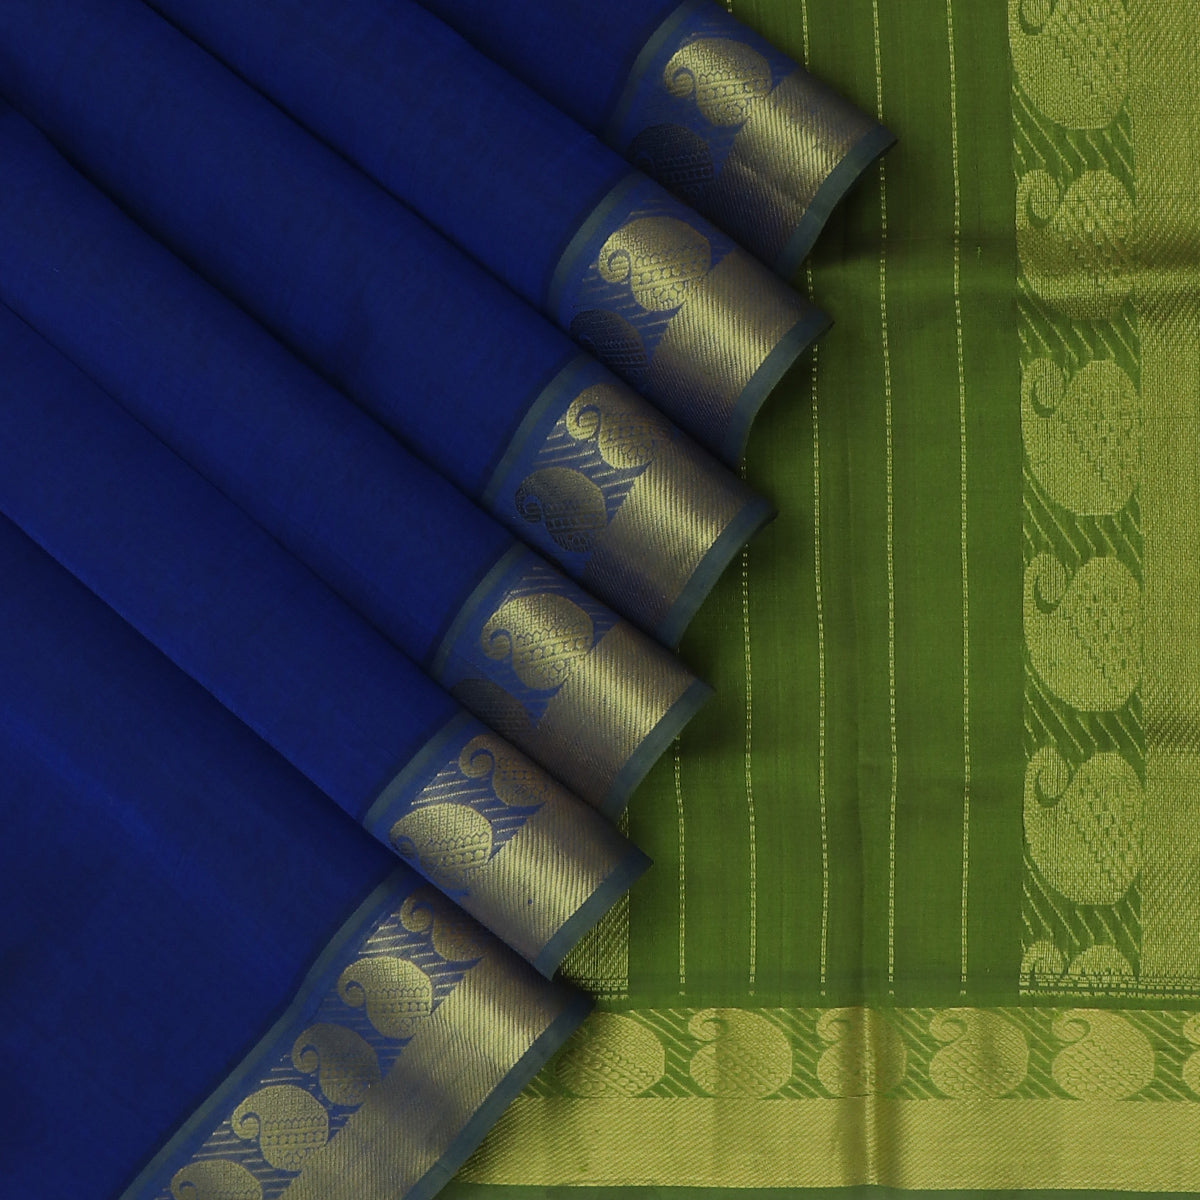 Silk Cotton Saree Blue and Mehandi Green with Mango Zari border 9 Yards